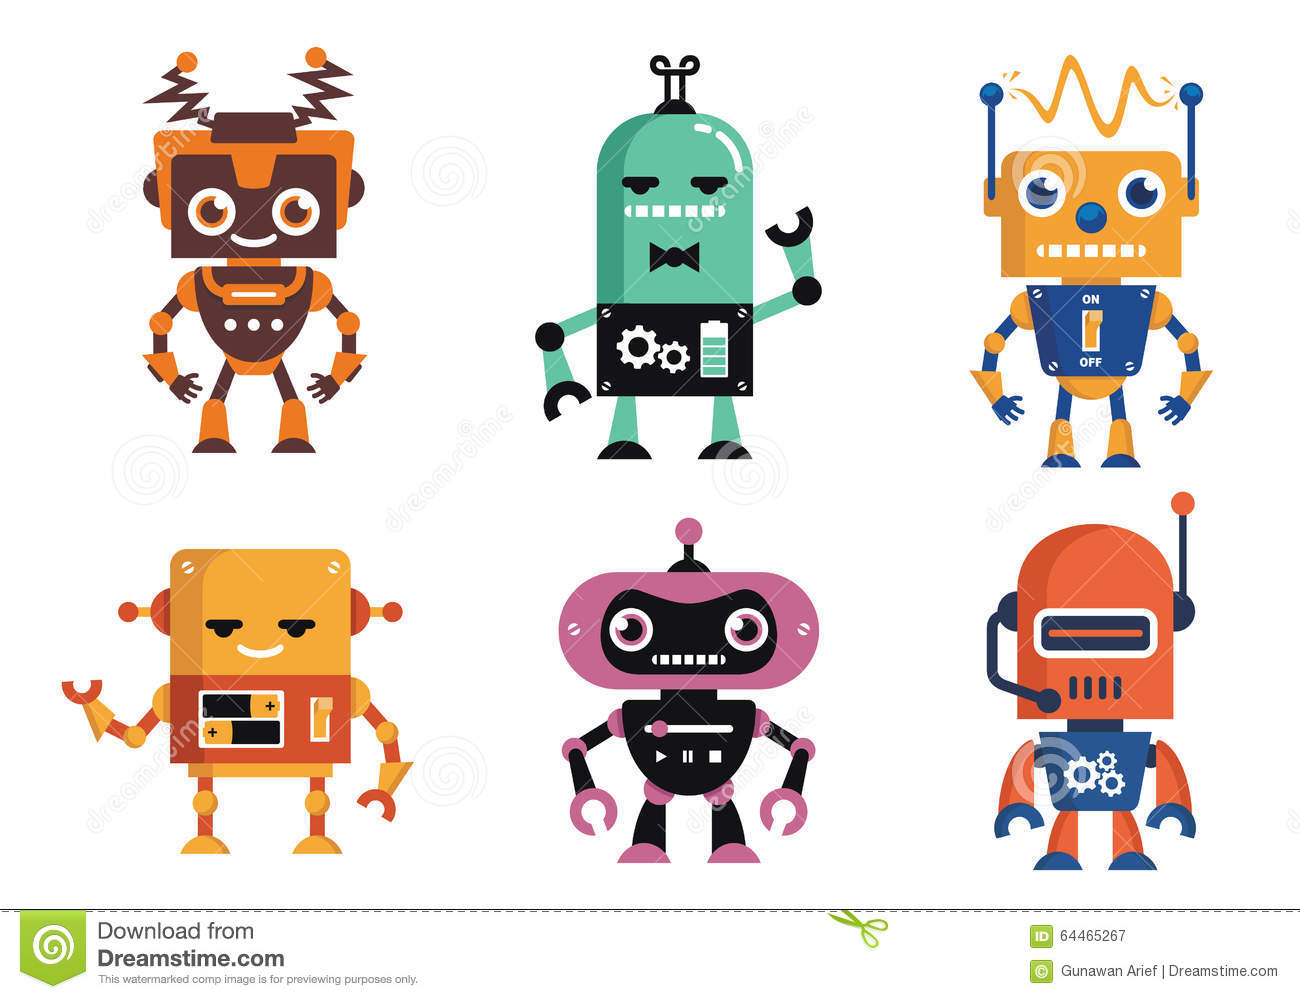 Character Design Icon : Funny geek robot character design stock vector